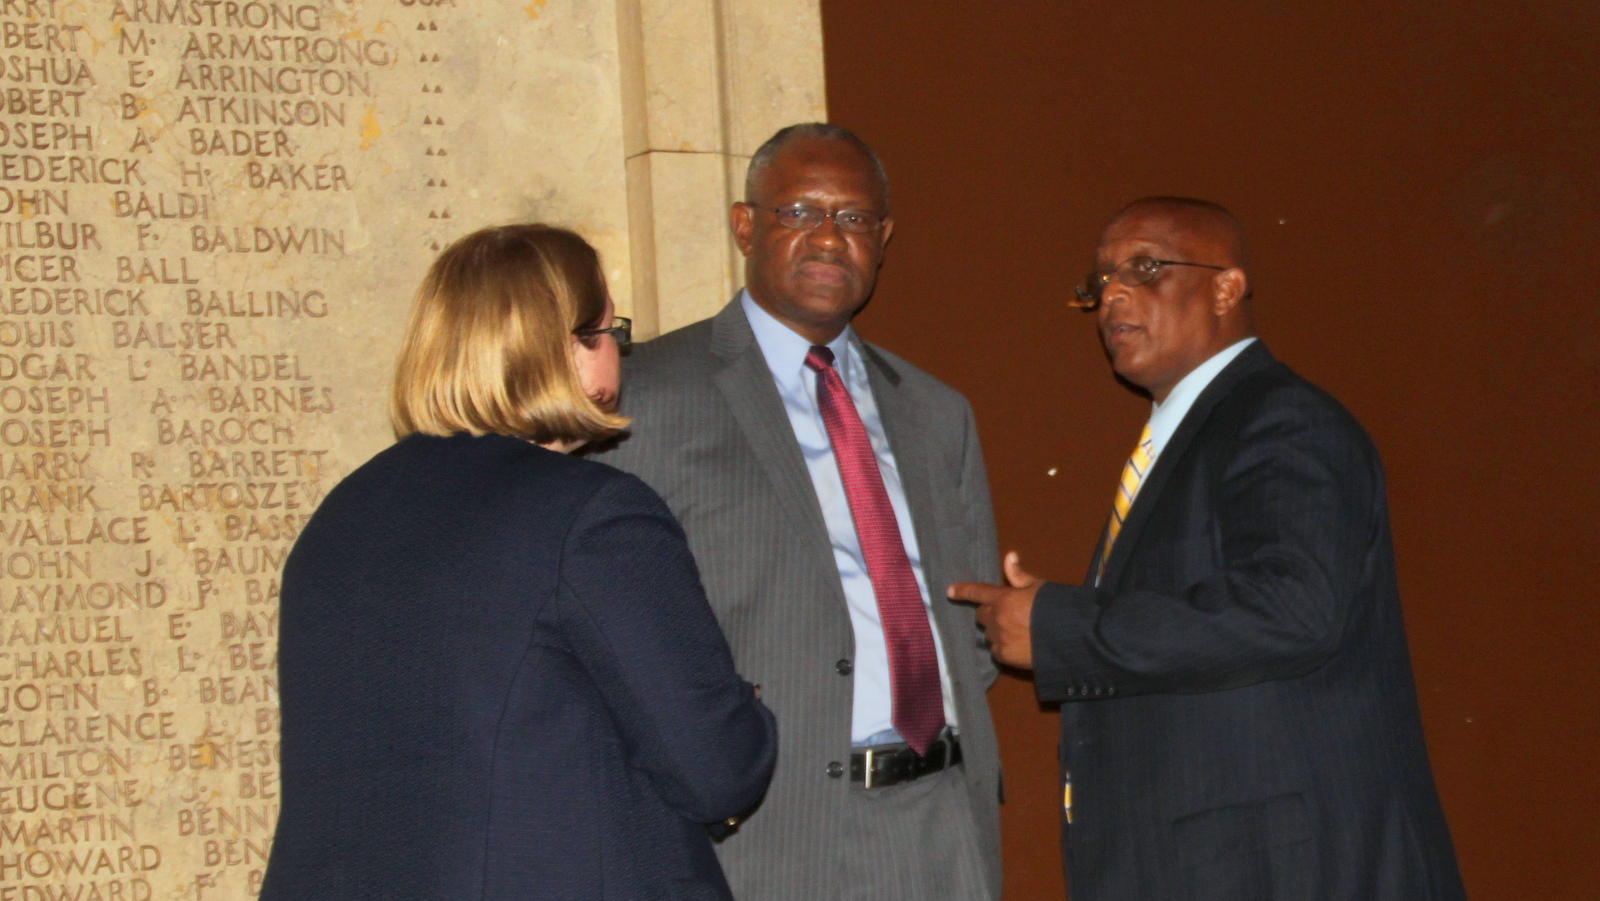 Councilman Carl Stokes (center) with Council President Jack Young, after Stokes declared the meeting recessed. (Fern Shen)